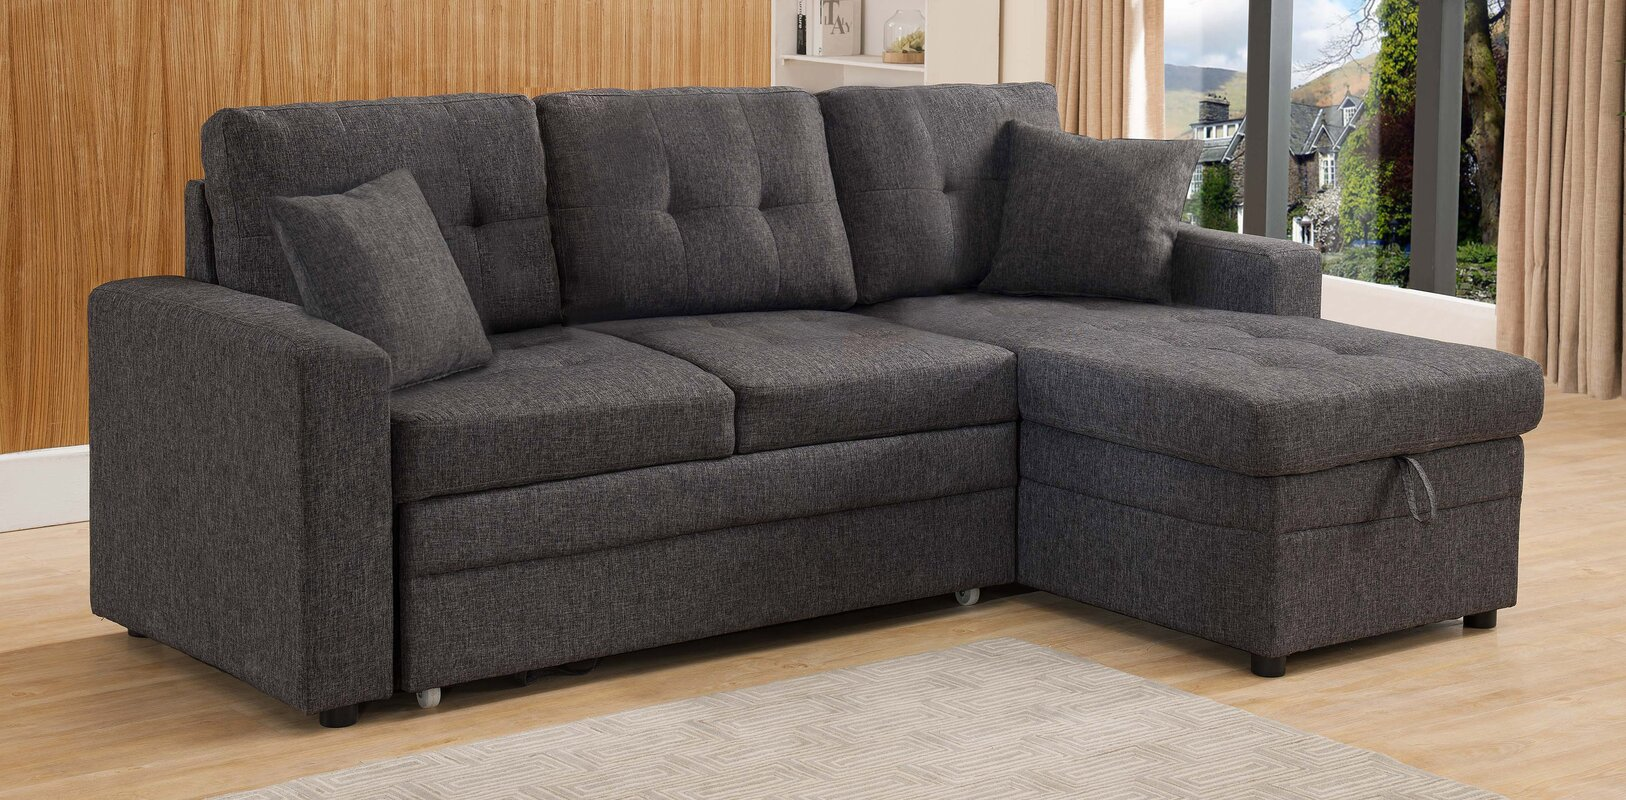 sofa boy bed sectional enchanting clearance is why bedroom mattress sleeper the and best some lazy reasons